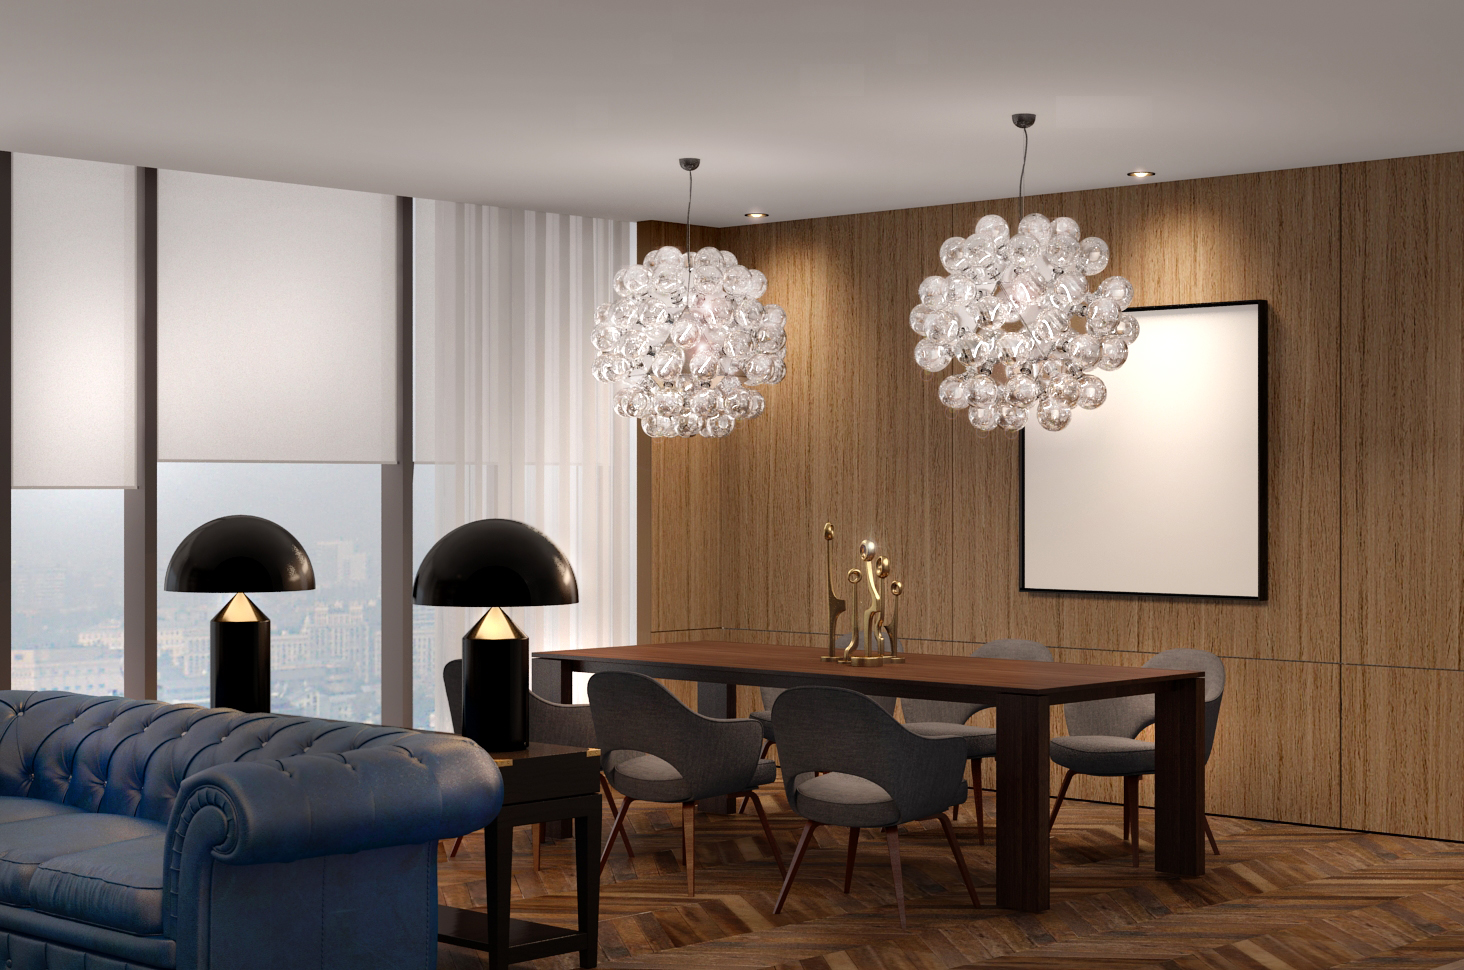 Lounge and dining room